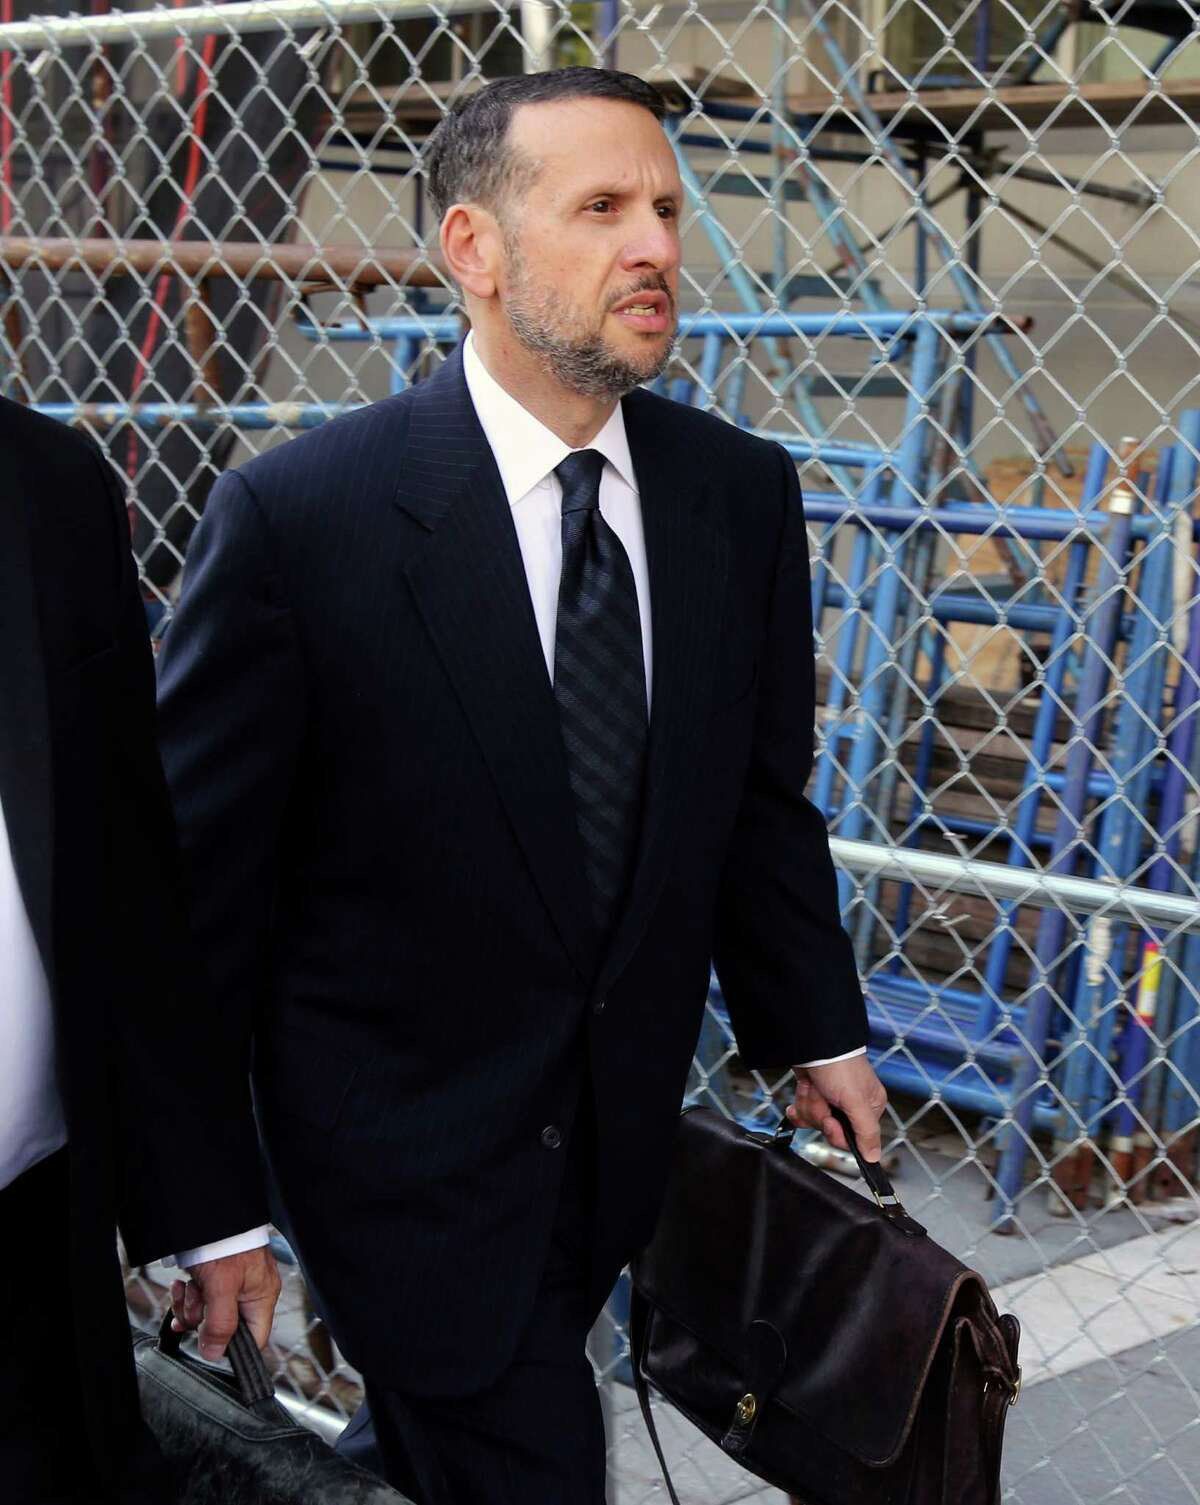 FILE - In a Friday, Sept. 23, 2016 file photo, David Wildstein arrives at the federal courthouse, in Newark, N.J. Wildstein testified Tuesday, Oct. 4, 2016, that New Jersey Gov. Chris Christie and New York Gov. Andrew Cuomo discussed releasing a false report to tamp down questions over the George Washington Bridge lane-closure scandal. (Chris Pedota/The Record via AP, File) ORG XMIT: NJHAC501